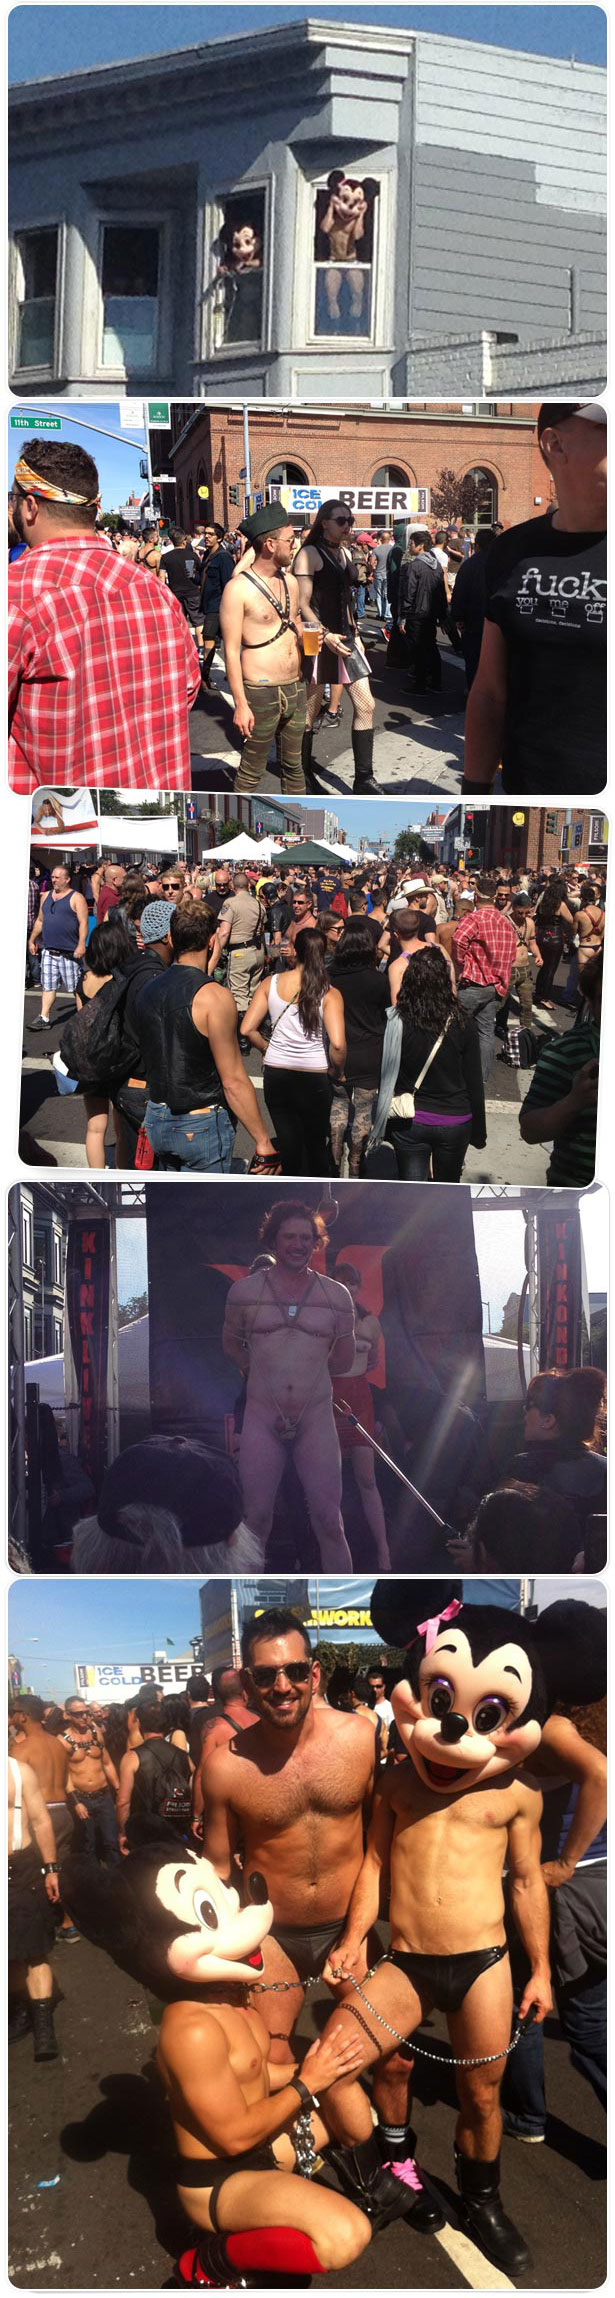 The SF Folsom street fair 2012